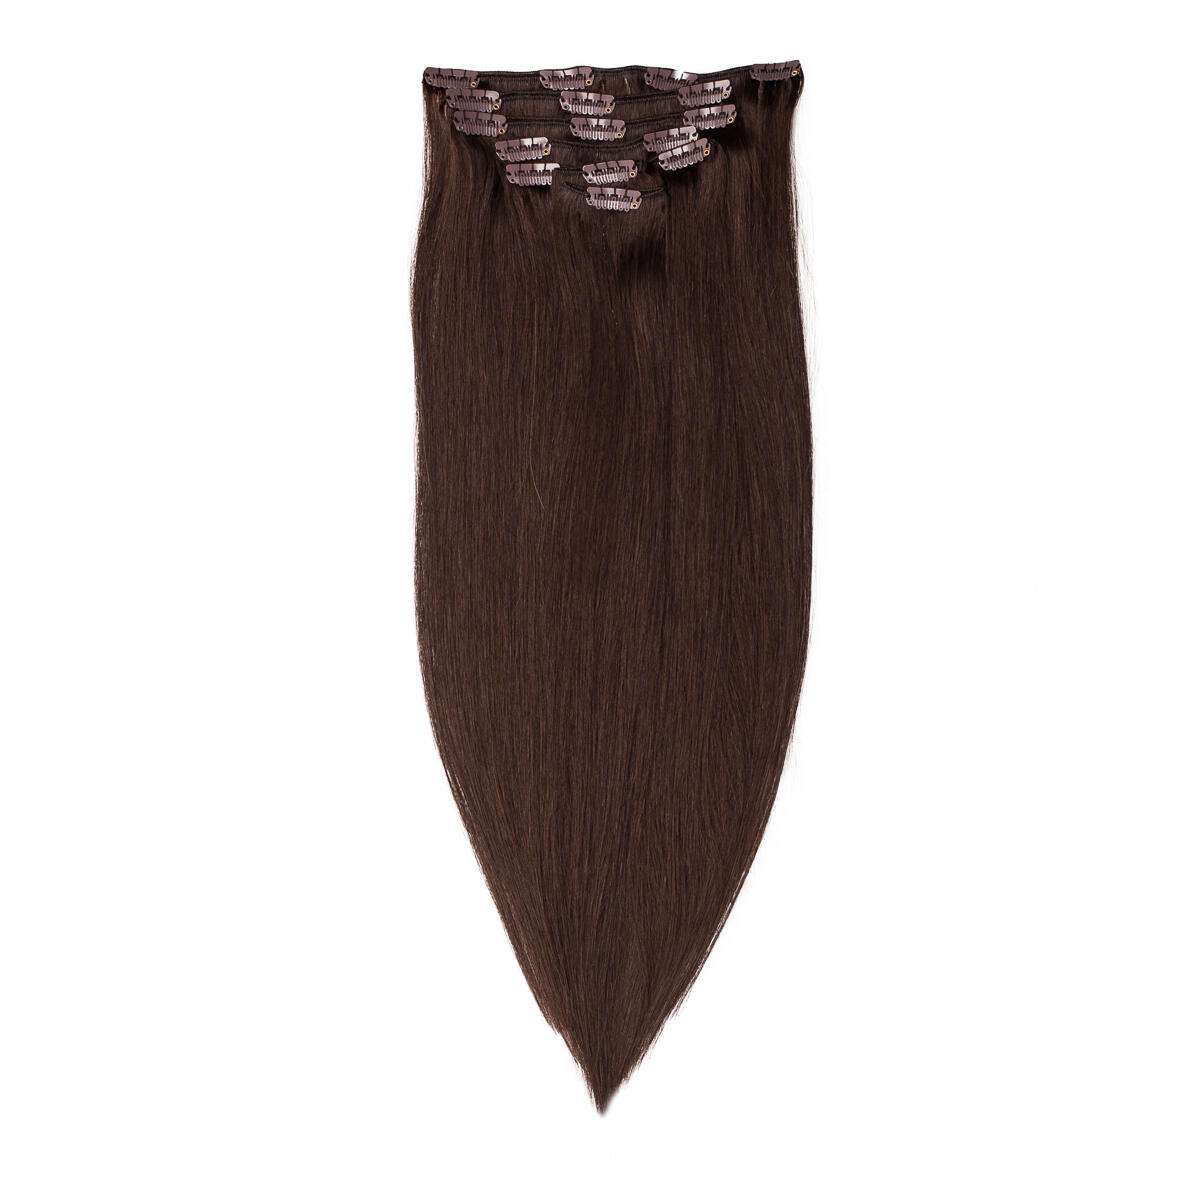 Clip-on set 2.4 Chad Wood Natural Brown 50 cm